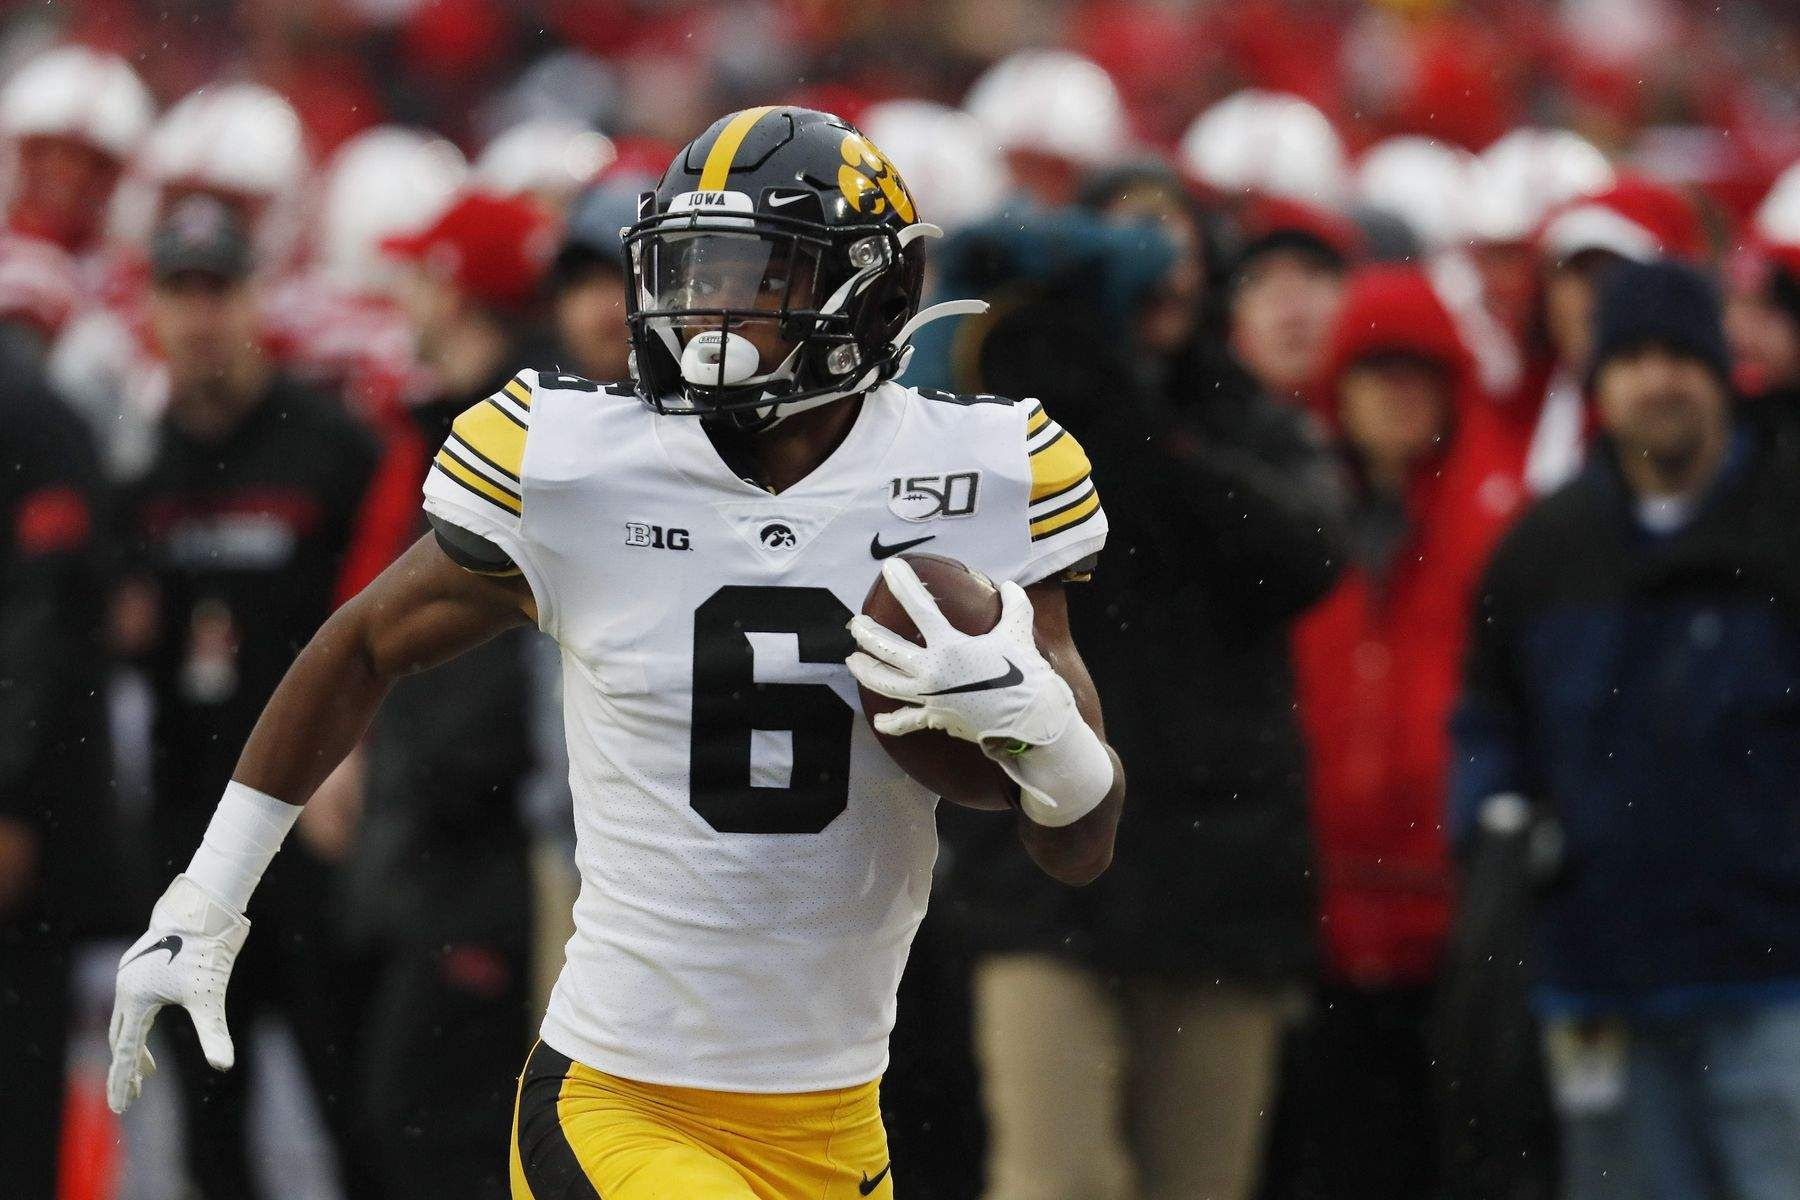 Iowa football at Nebraska Final score, stats, highlights